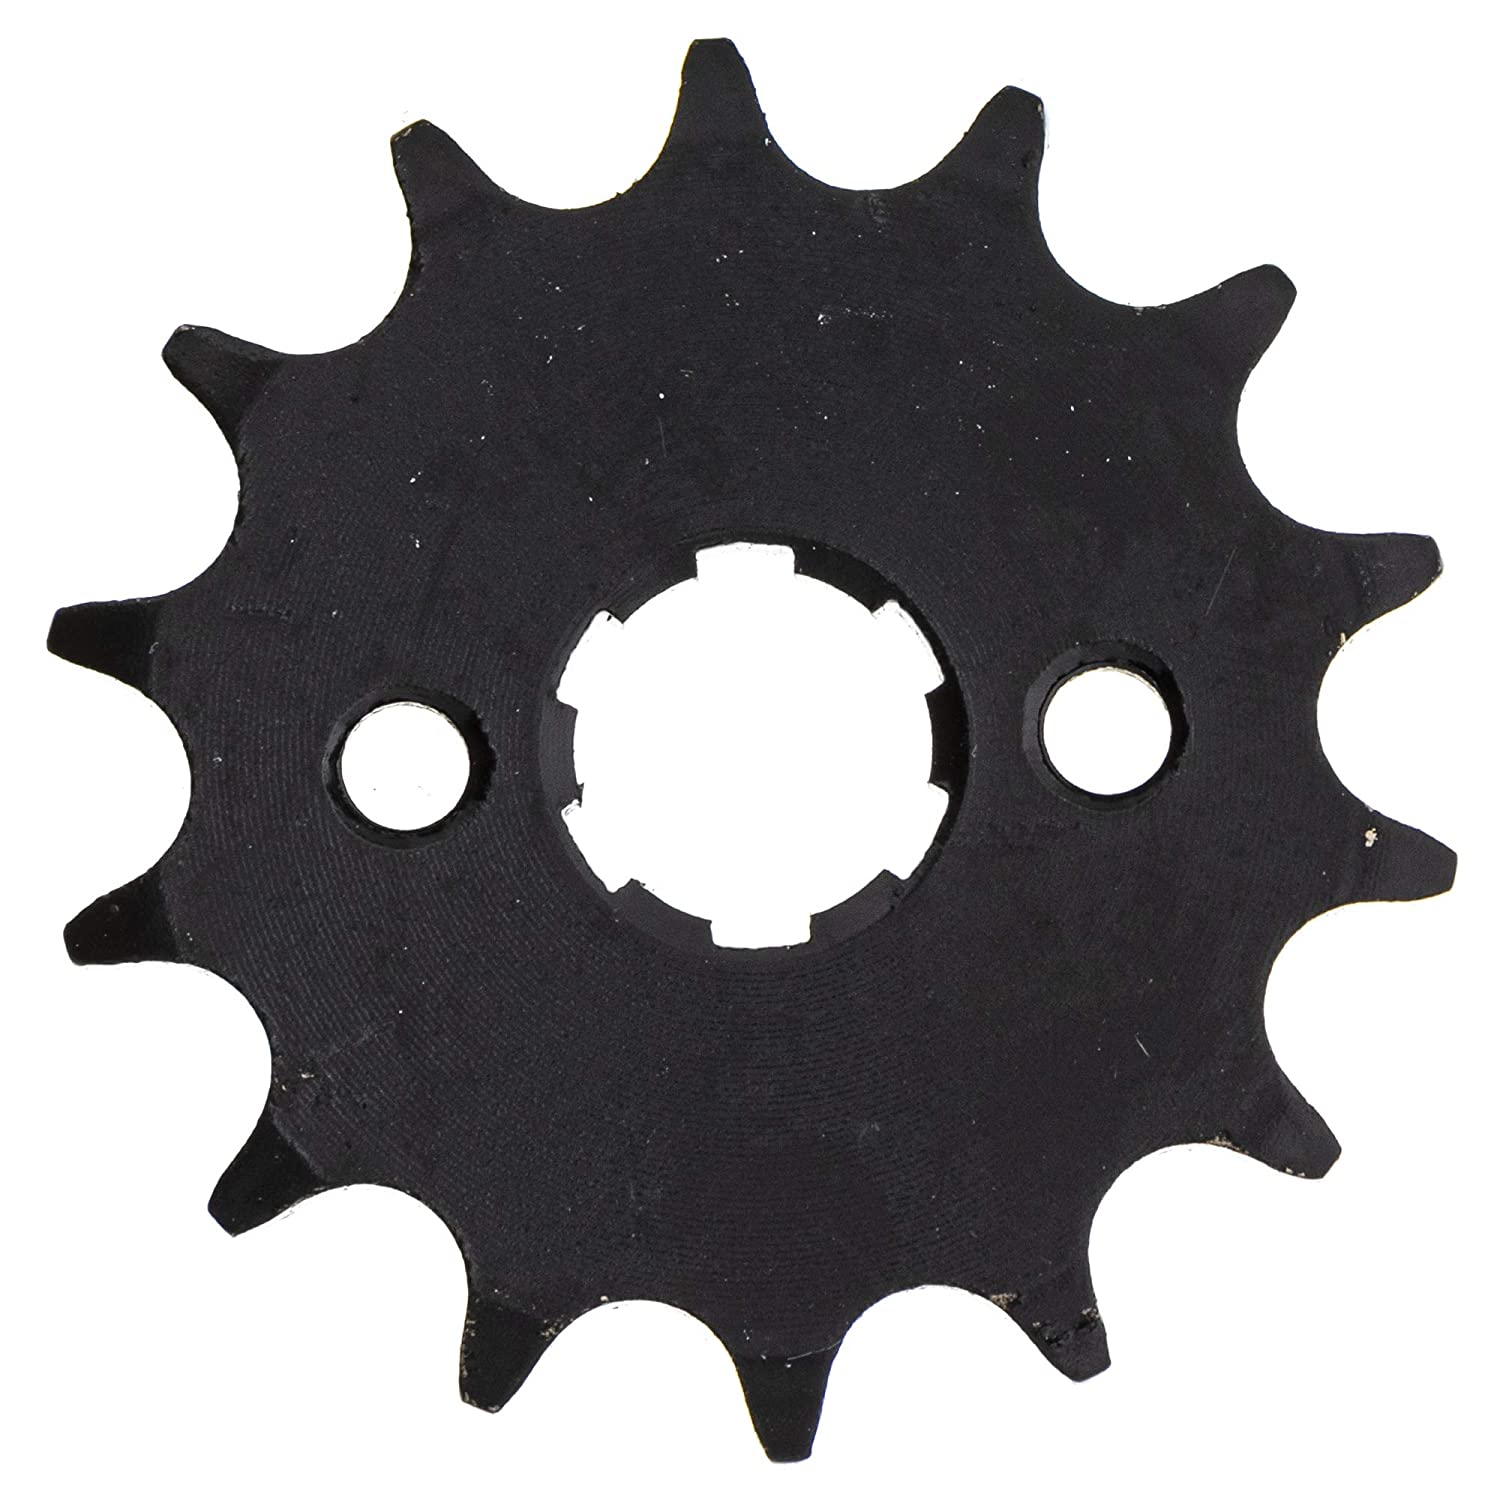 NICHE 428 Pitch 14 Tooth Front Drive Sprocket For 1981-2013 Honda XR100 XR100R CRF100F C100 93823-14149-00